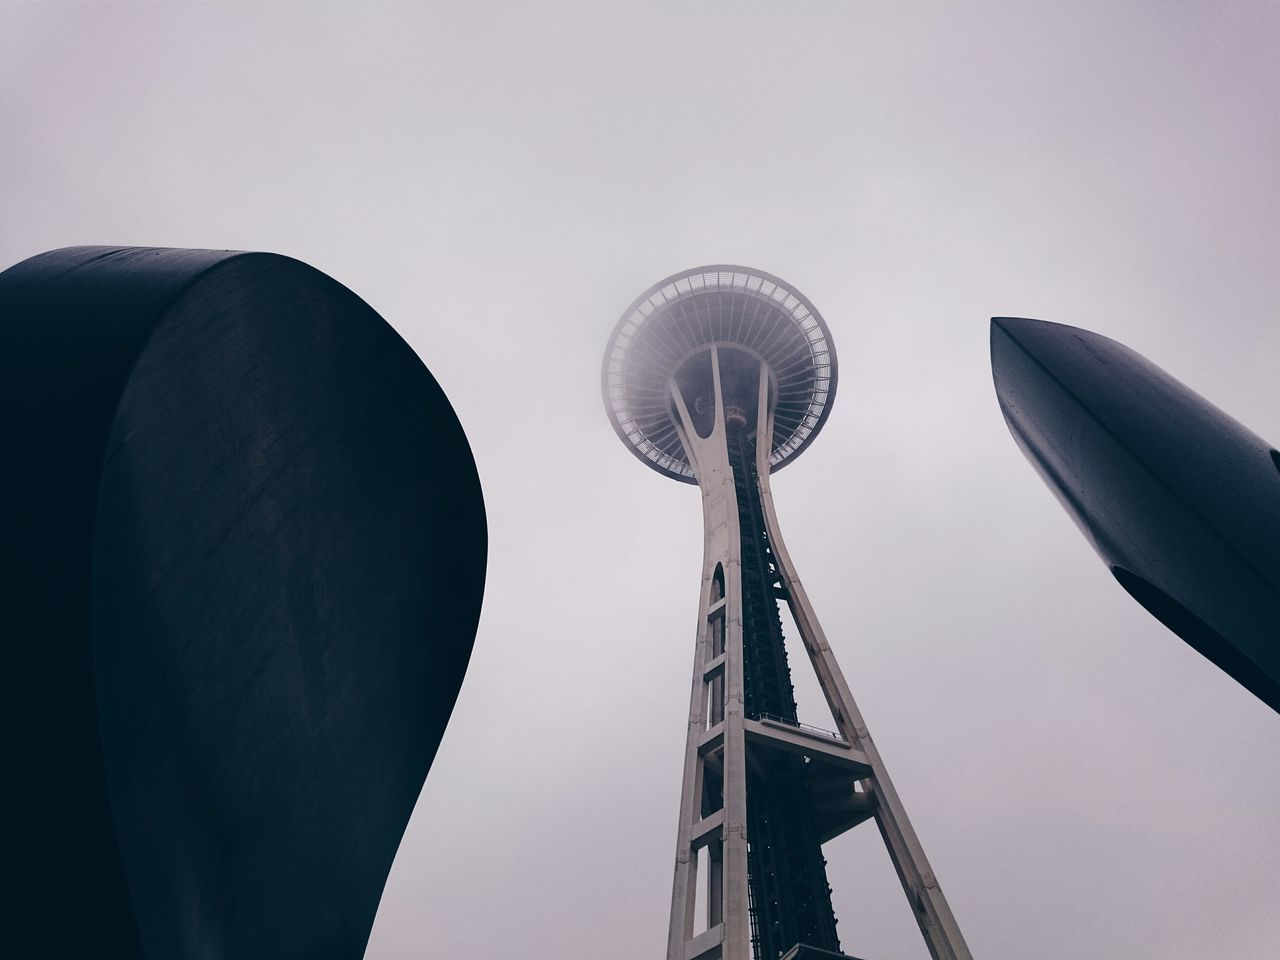 Space saucer Low Angle View No People Tower EyeEm Masterclass PNW Uniqueness Sonyimages EyeEm Best Shots Sony Walking Around Adapted To The City Streetphotography Architecture PNWonderland Lieblingsteil Future